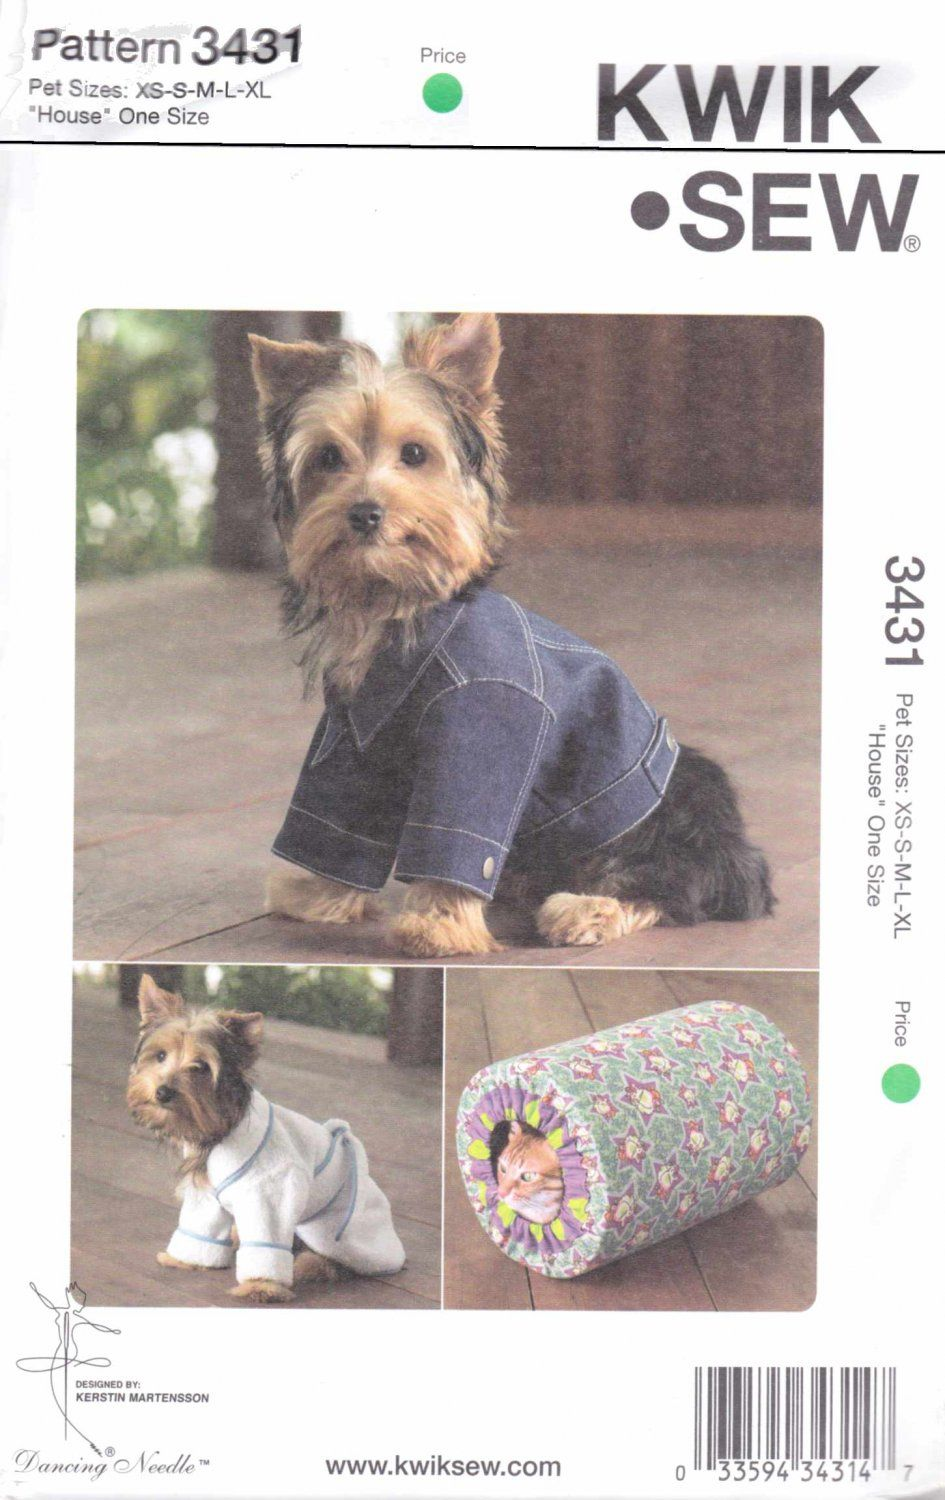 Kwik sew sewing pattern 3431 size xs xl dog blue jean jacket robe new dog clothes sewing pattern 3431 by kwik sew kwik sew sewing pattern is new you are buying the sewing pattern only not the finished item jeuxipadfo Image collections